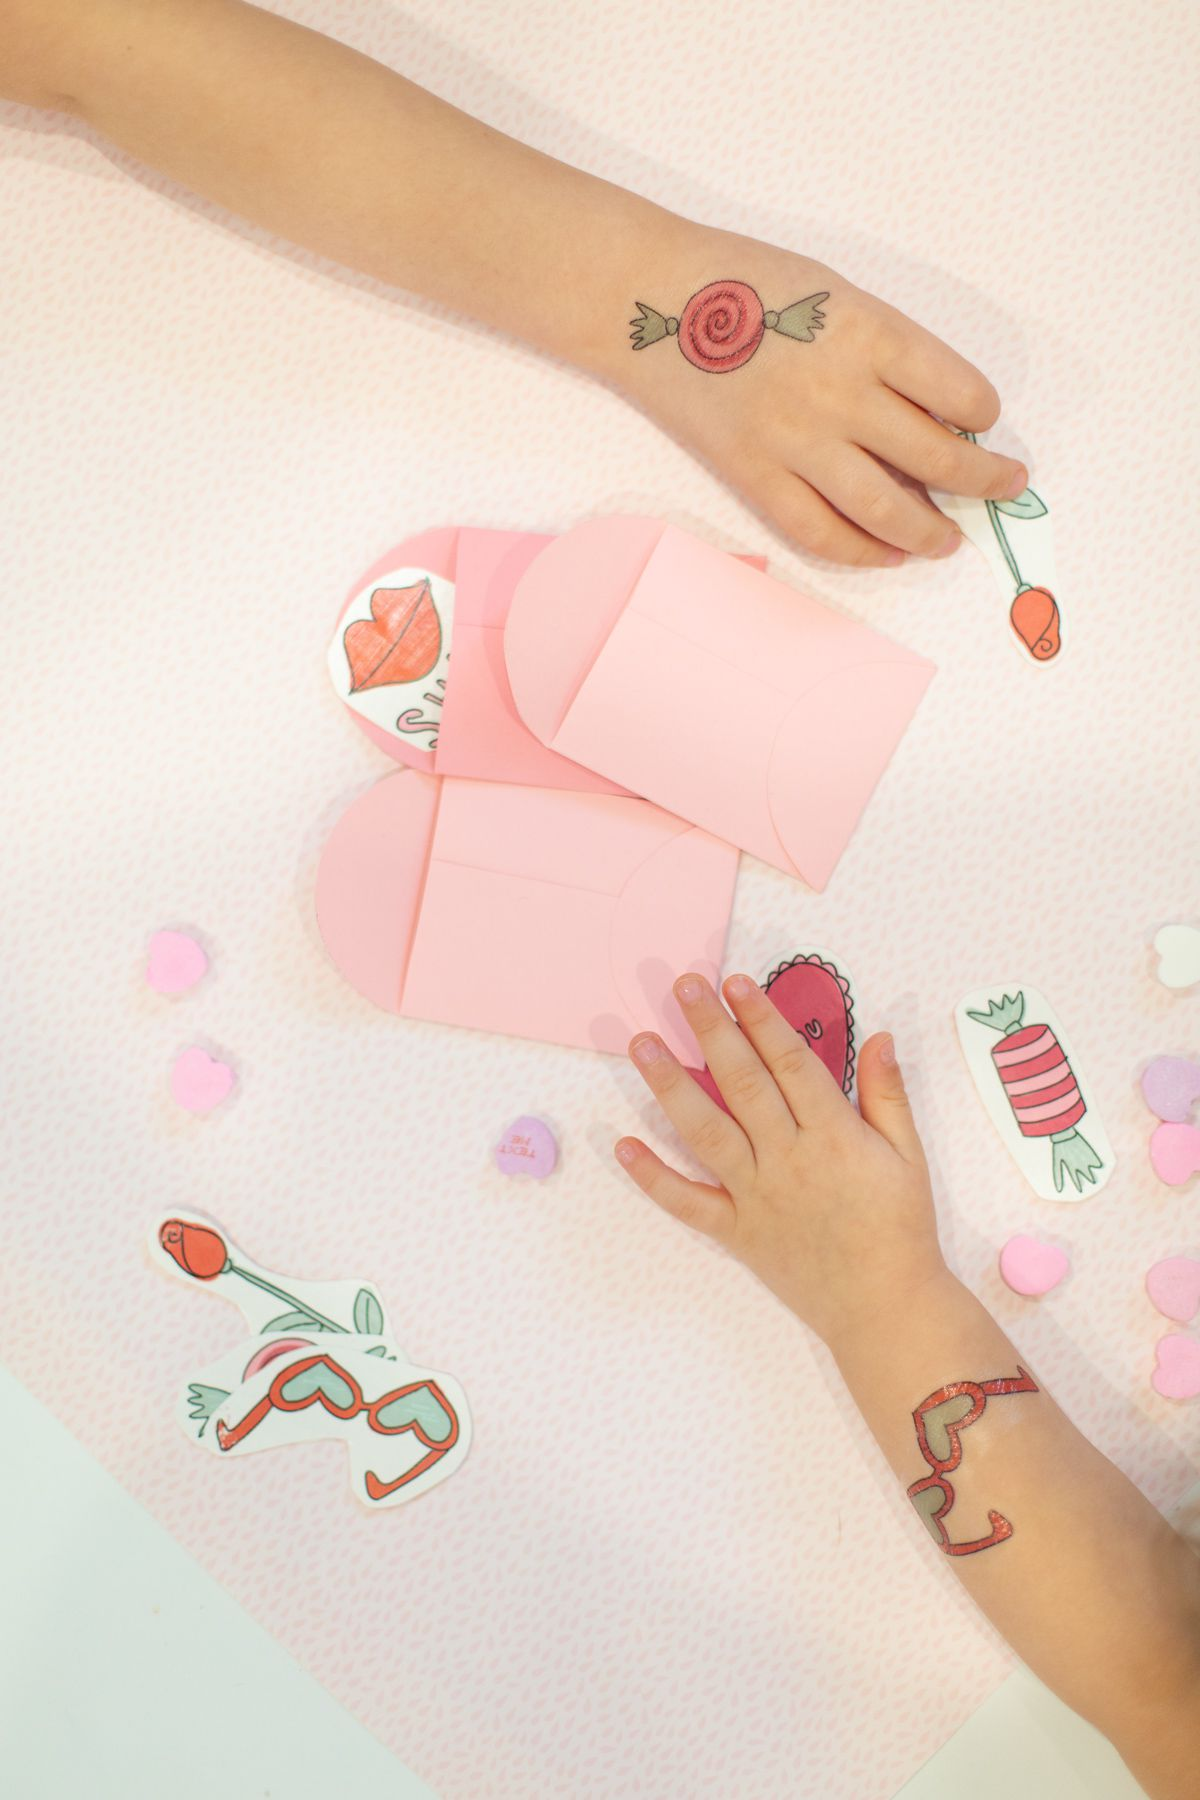 Free printable Valentine's Day tattoos for kids or grownups